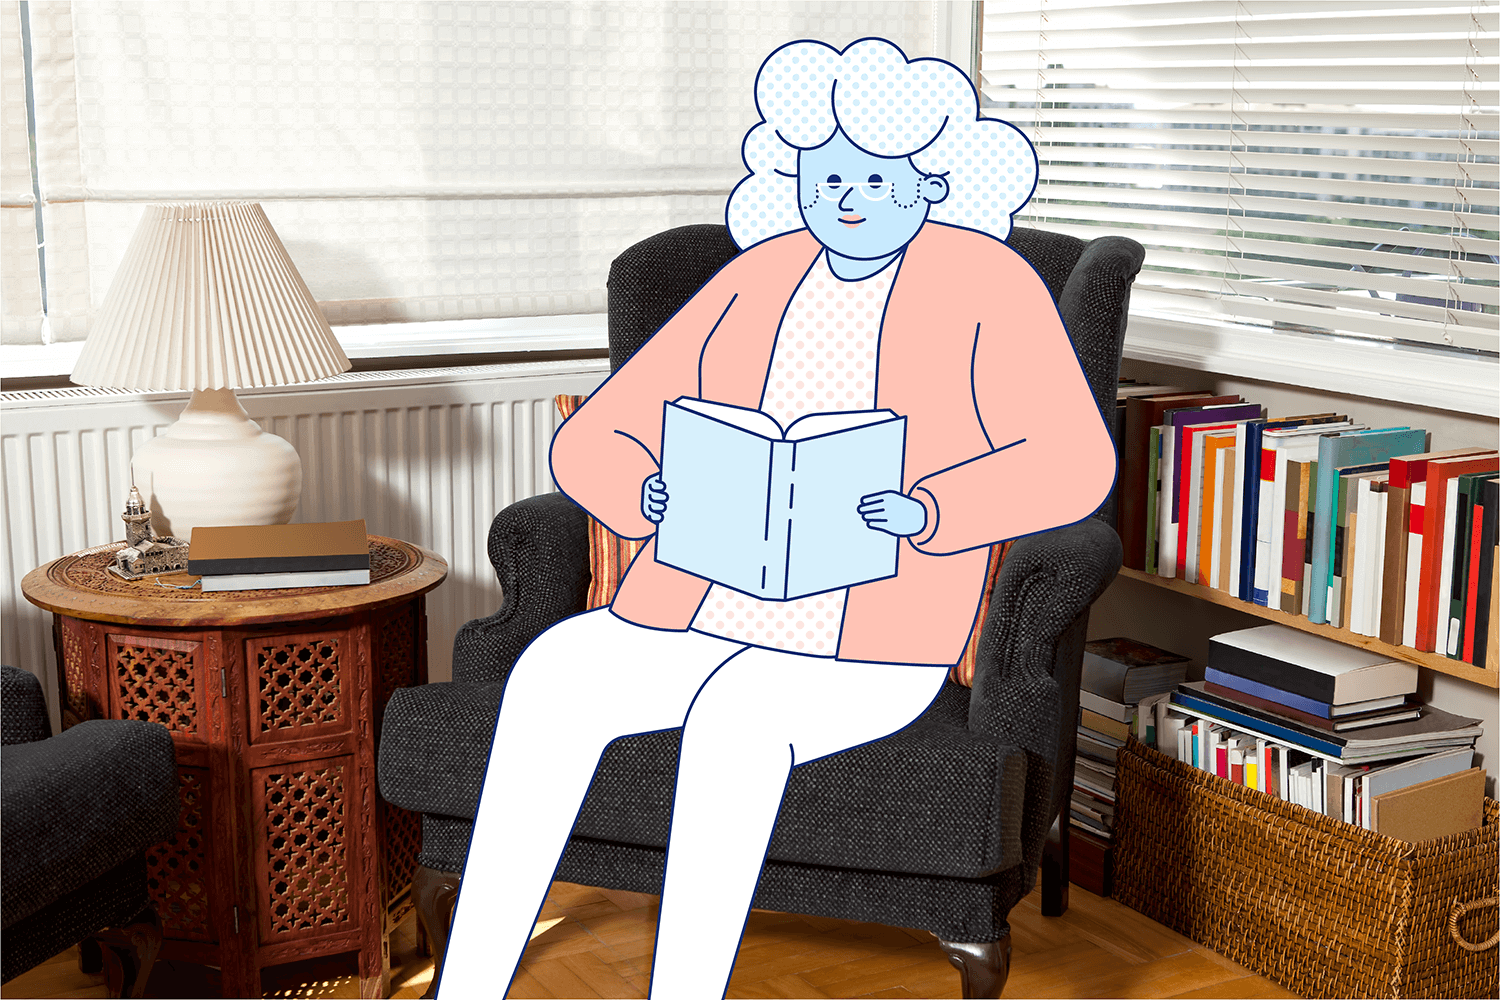 A woman happily reads a book in a chair during daylight hours. Illustration.